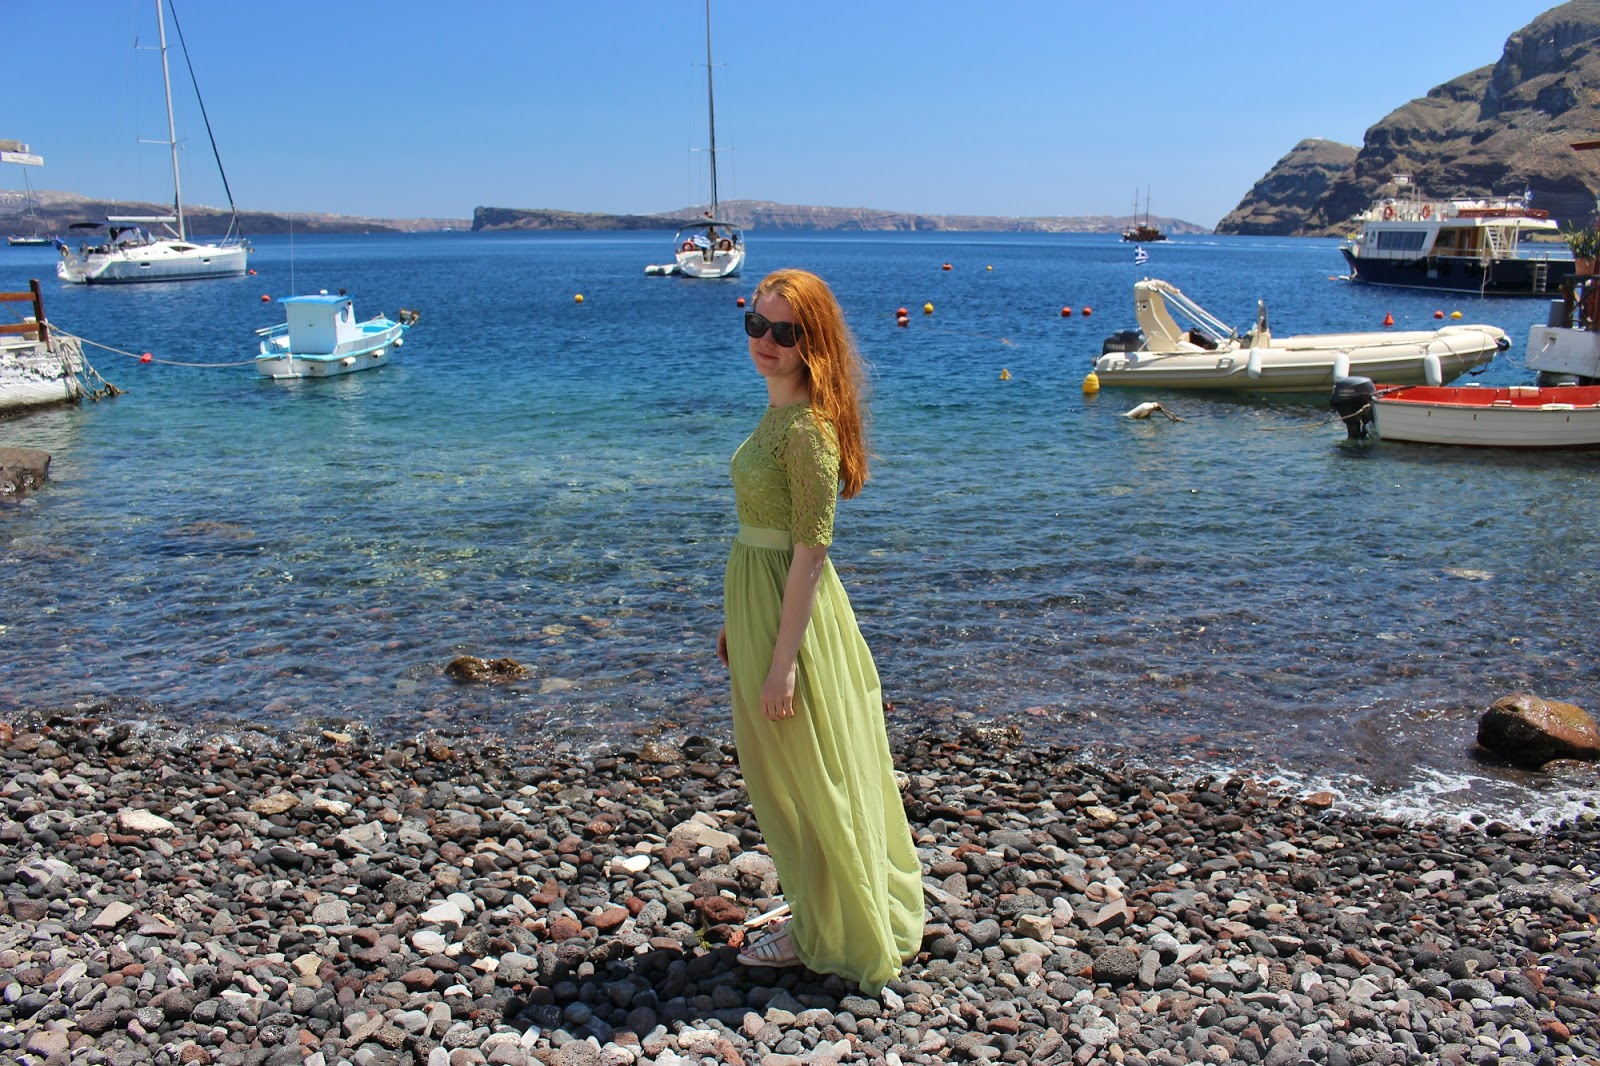 greece, lucie srbová, česká blogerka, blogerka, santorini, green dress